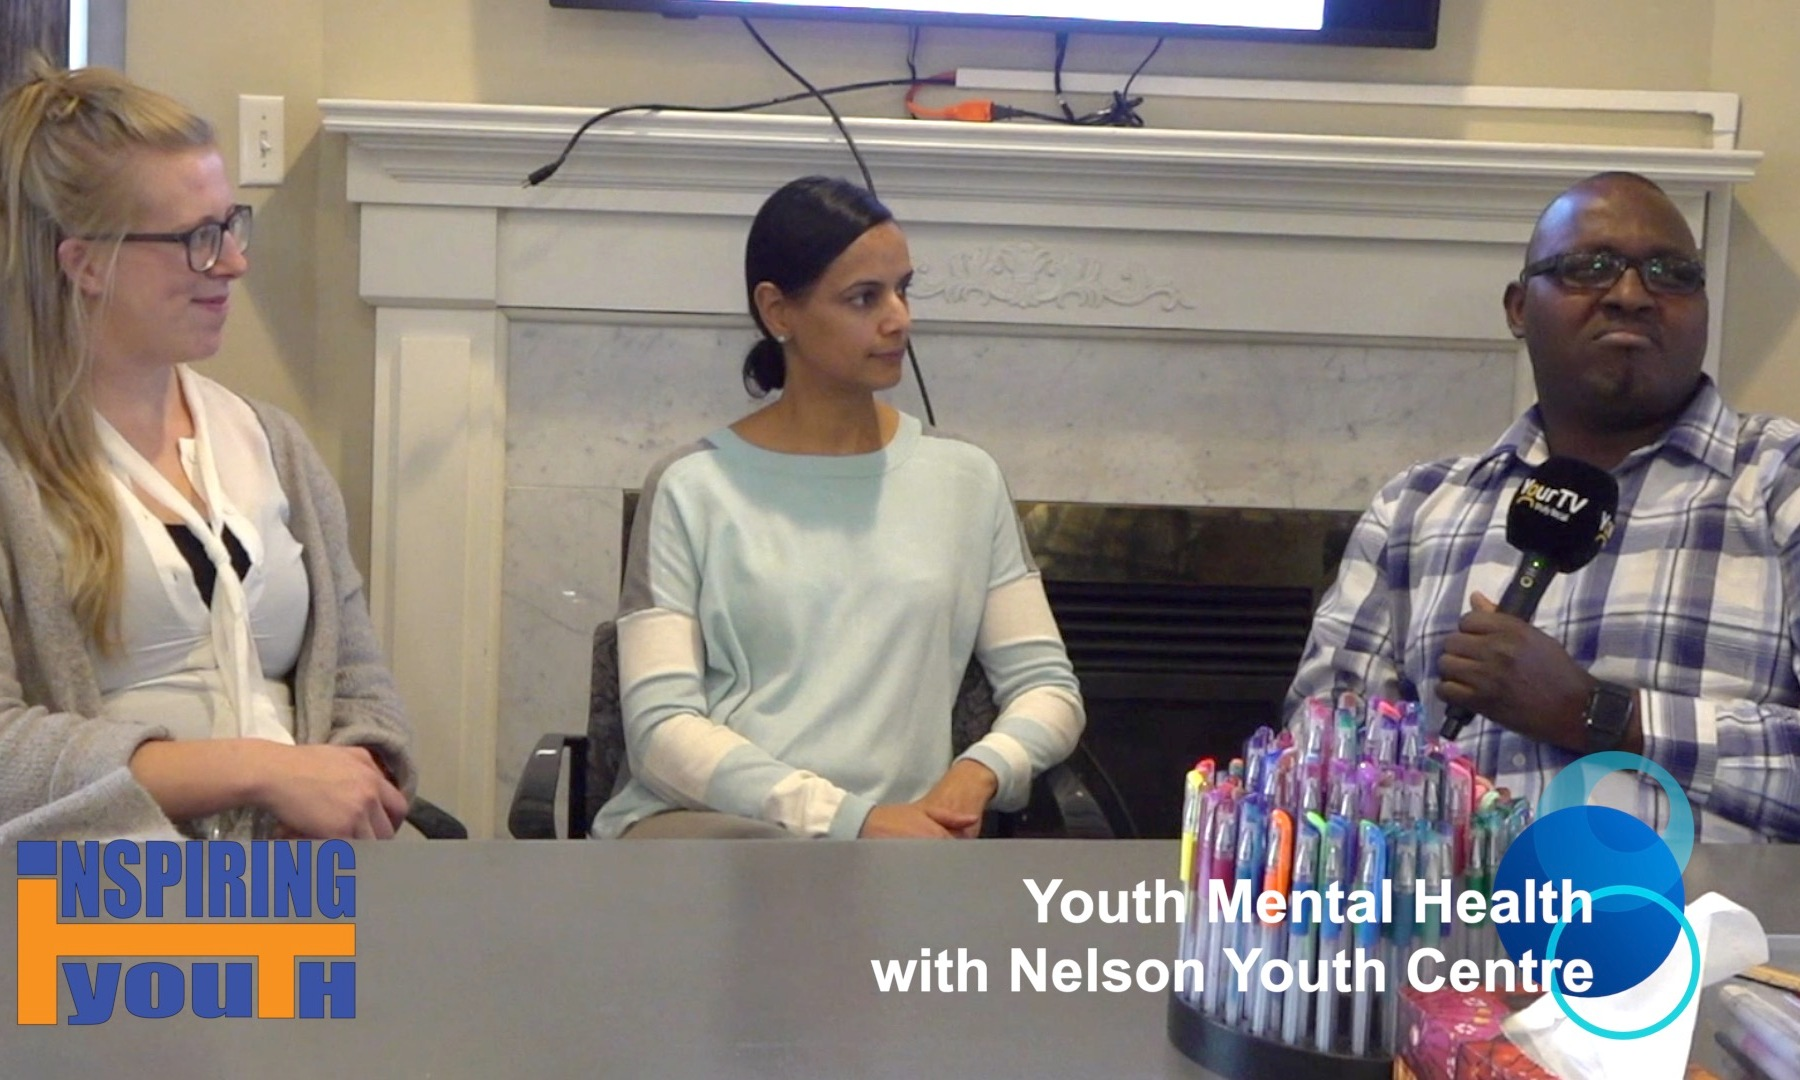 Nelson Youth Centres